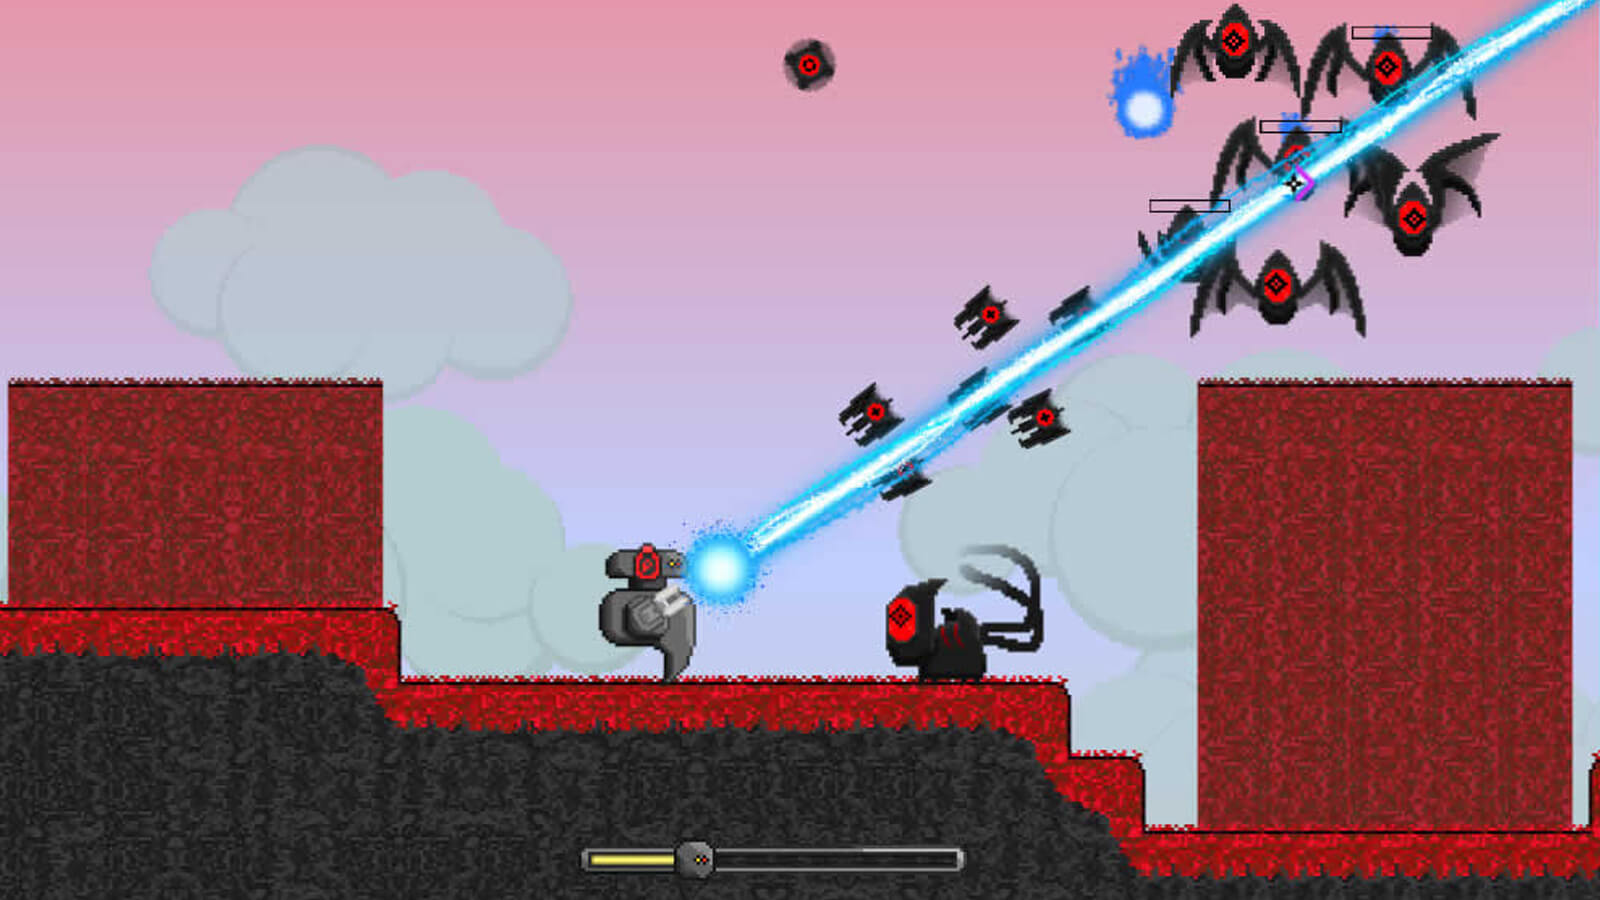 The player's robot character fires a blue laser beam at a group of single-eyed black bat enemies